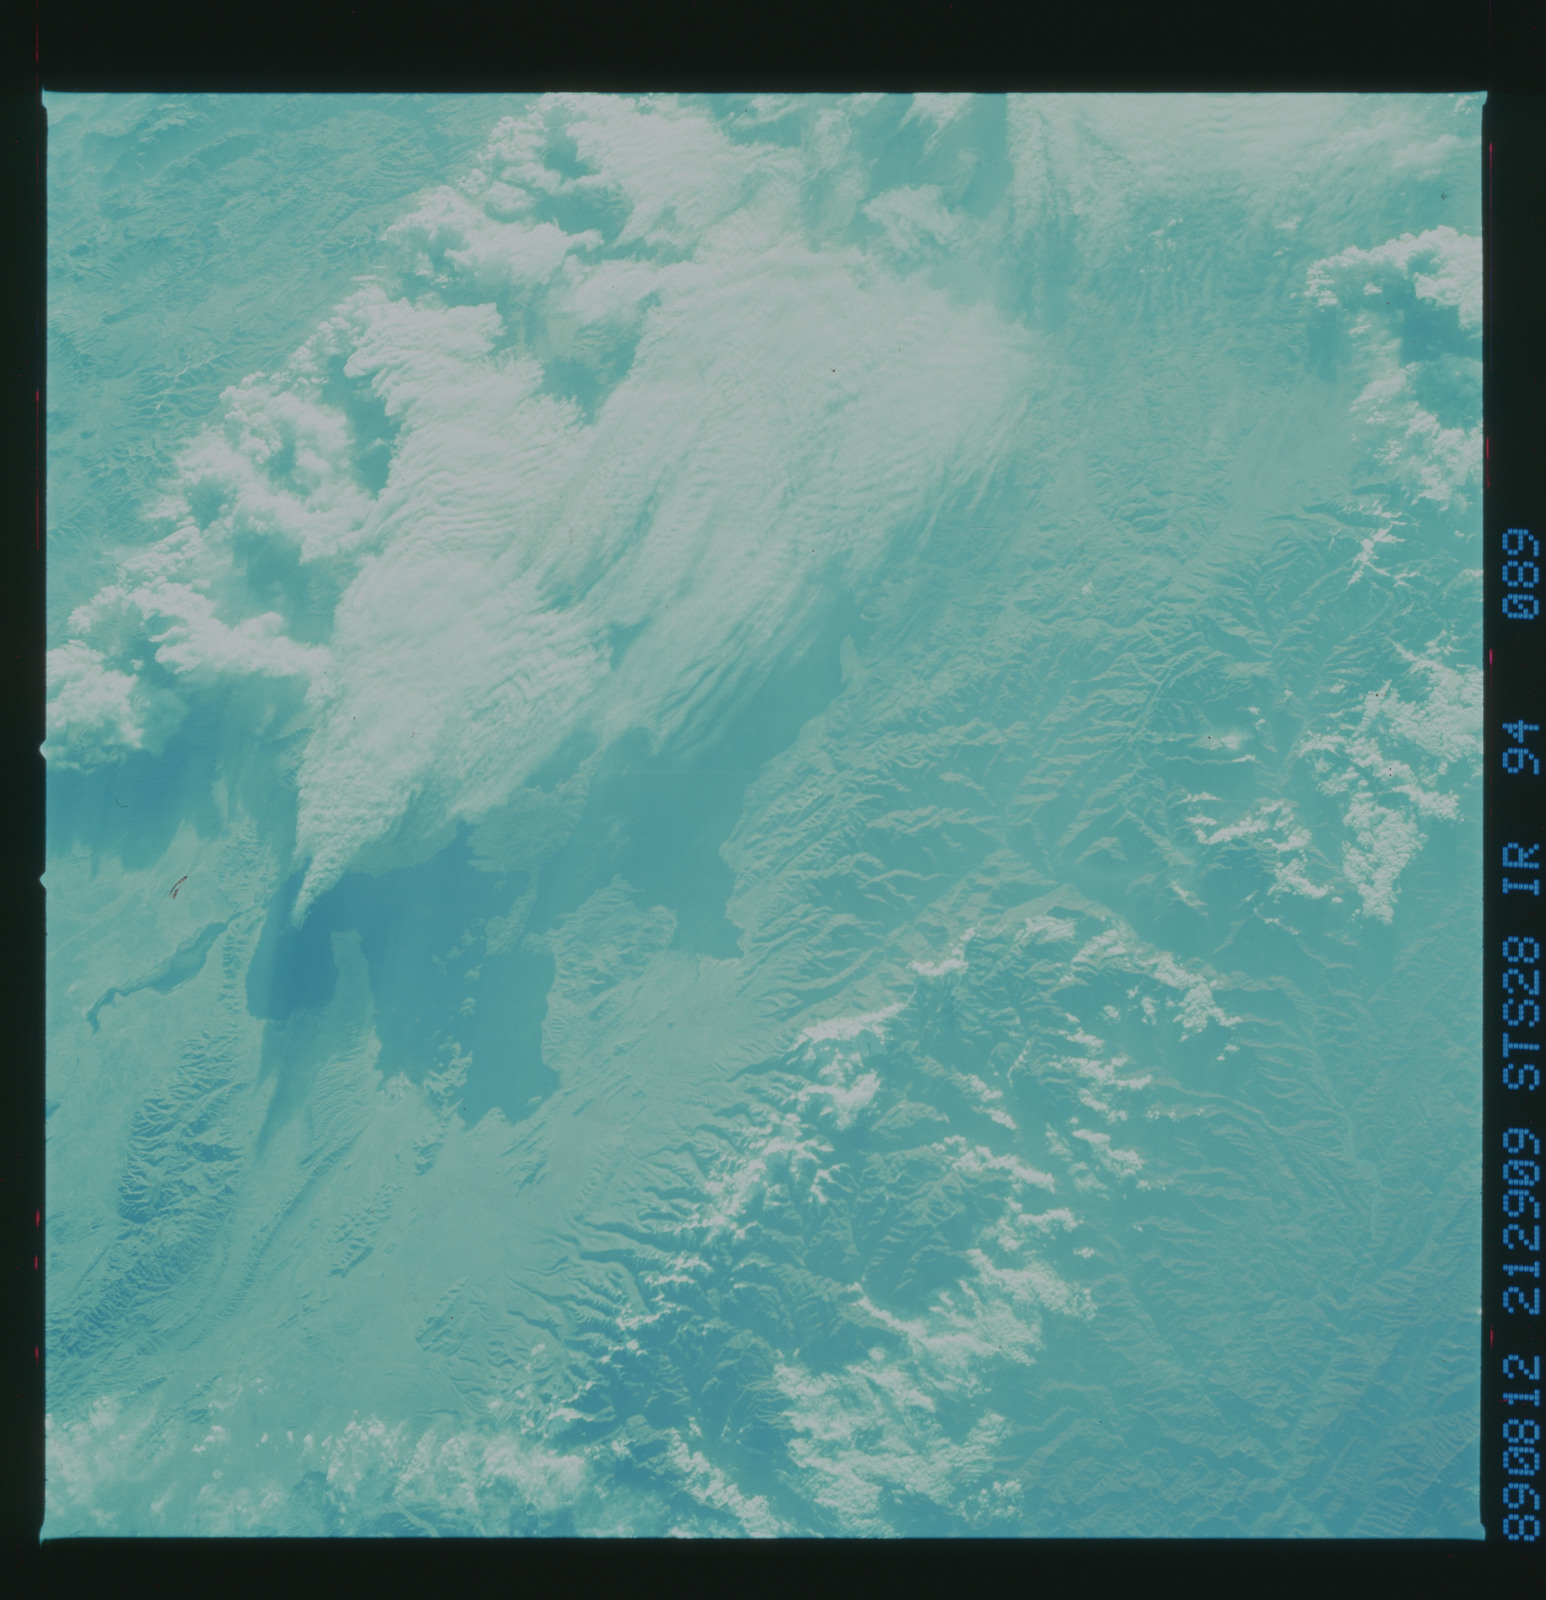 S28-94-089 - STS-028 - Infrared Earth observations taken the STS-28 mission